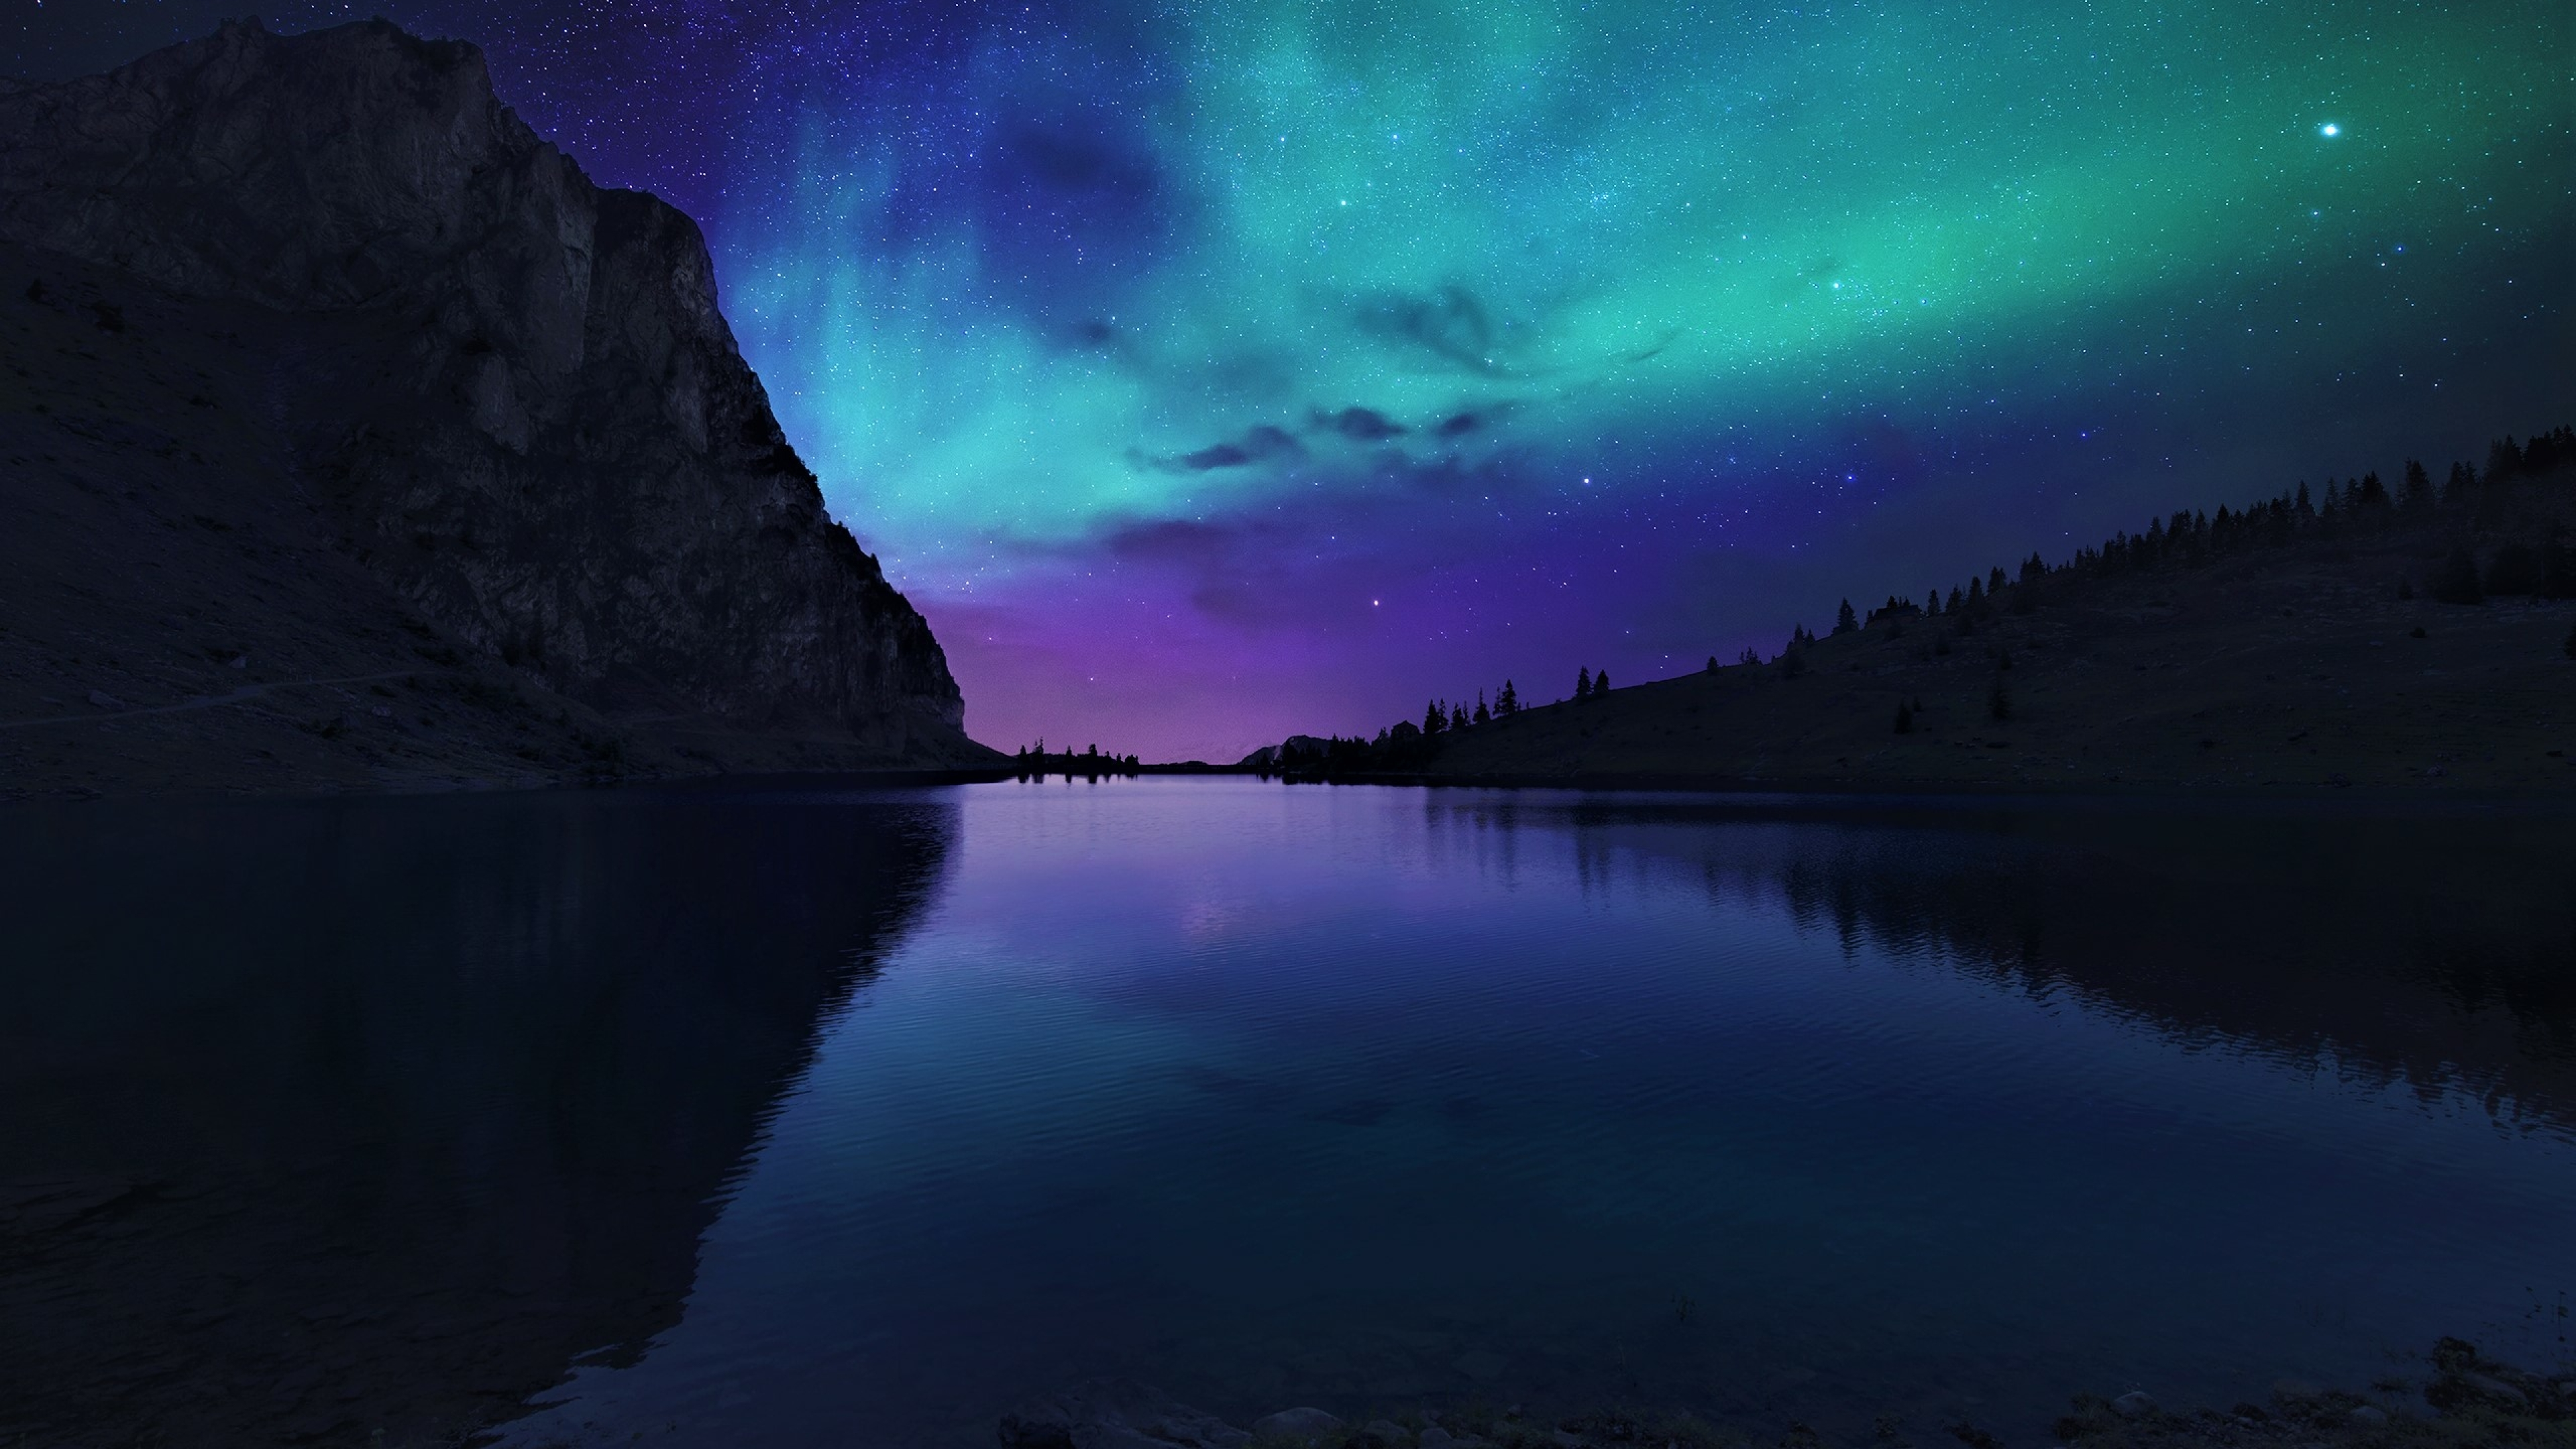 Aurora Borealis Northern Lights Over Mountain Lake, Full